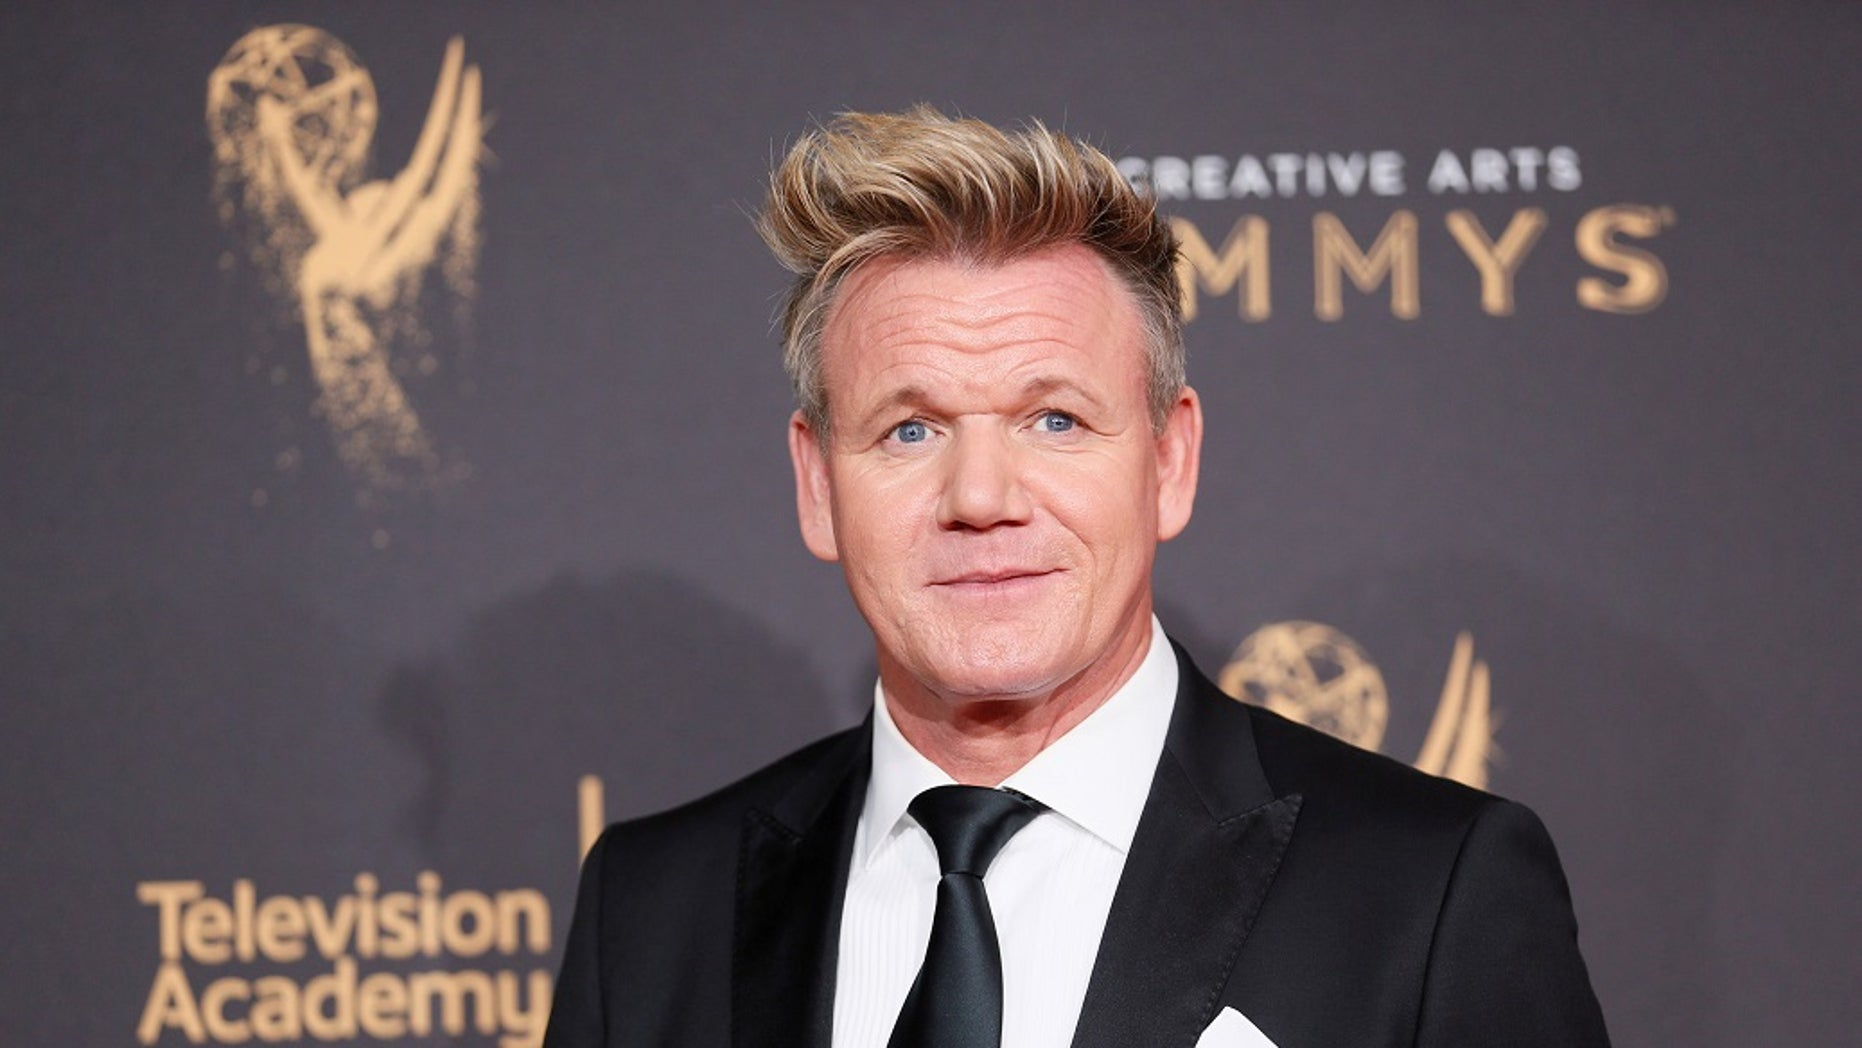 Chef Gordon Ramsay poses at the 2017 Creative Arts Emmy Awards in Los Angeles, California September 9, 2017. REUTERS/Danny Moloshok - RC14ECDE7760